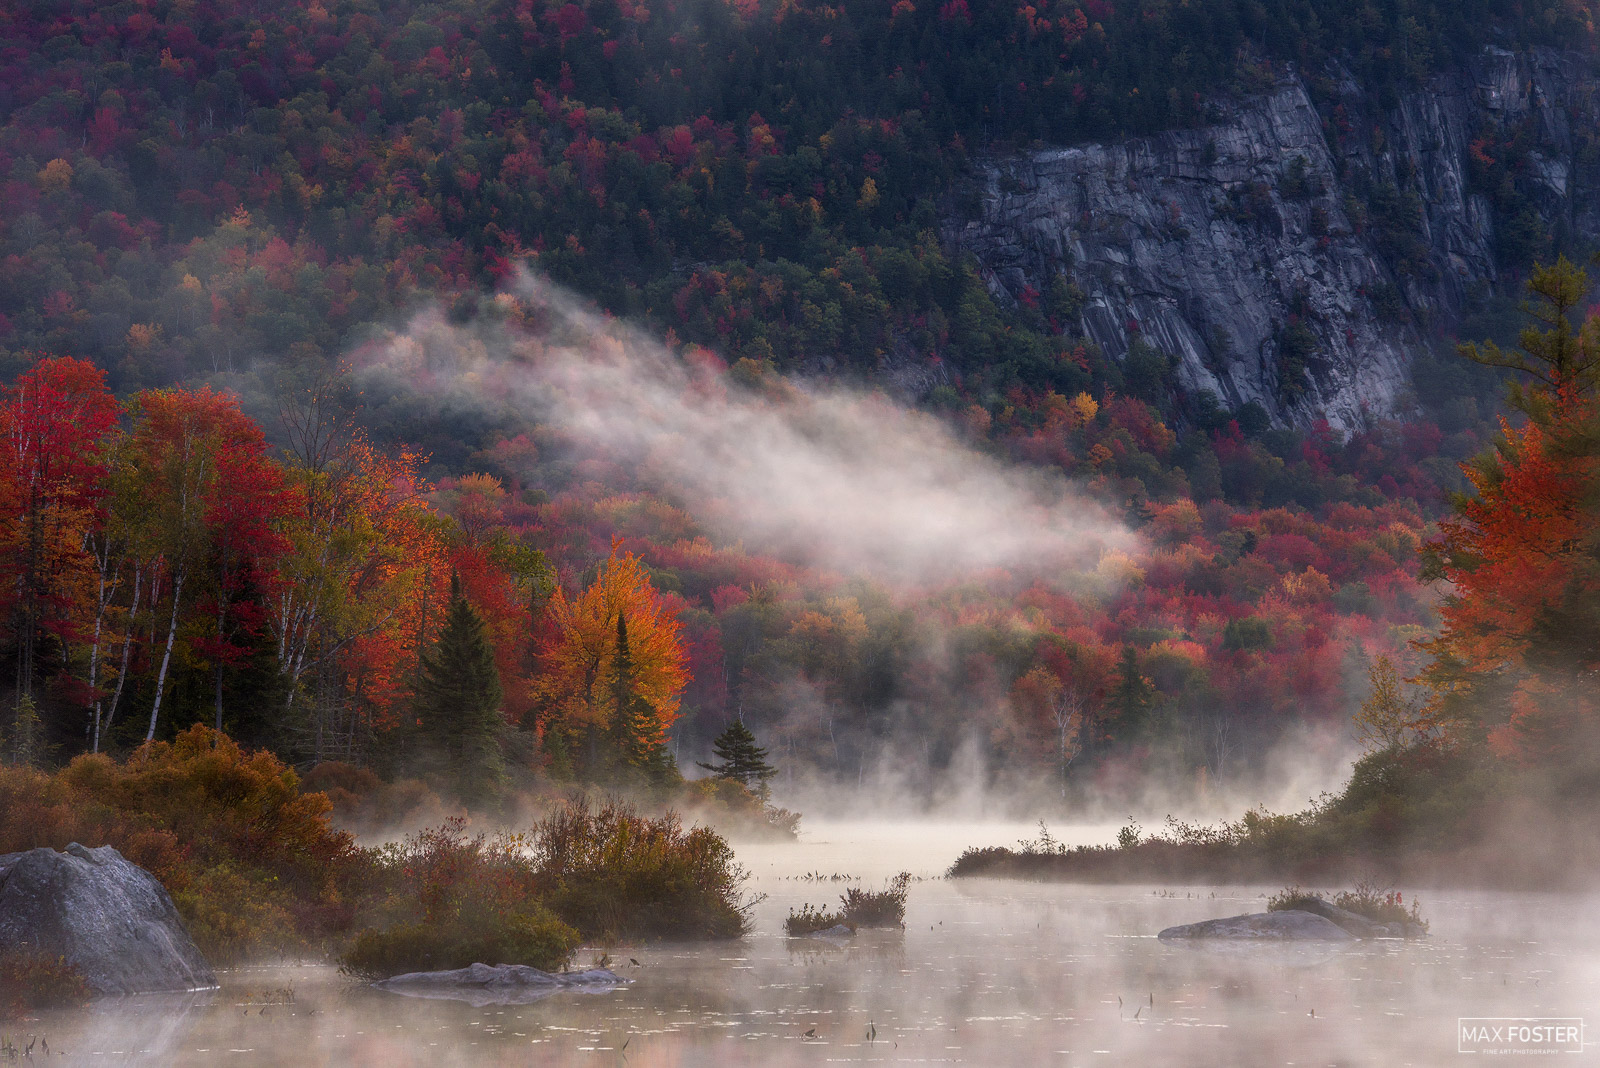 Groton State Forest, Vermont, Groton, Fall, Autumn, Forest, Mist Rising, photo